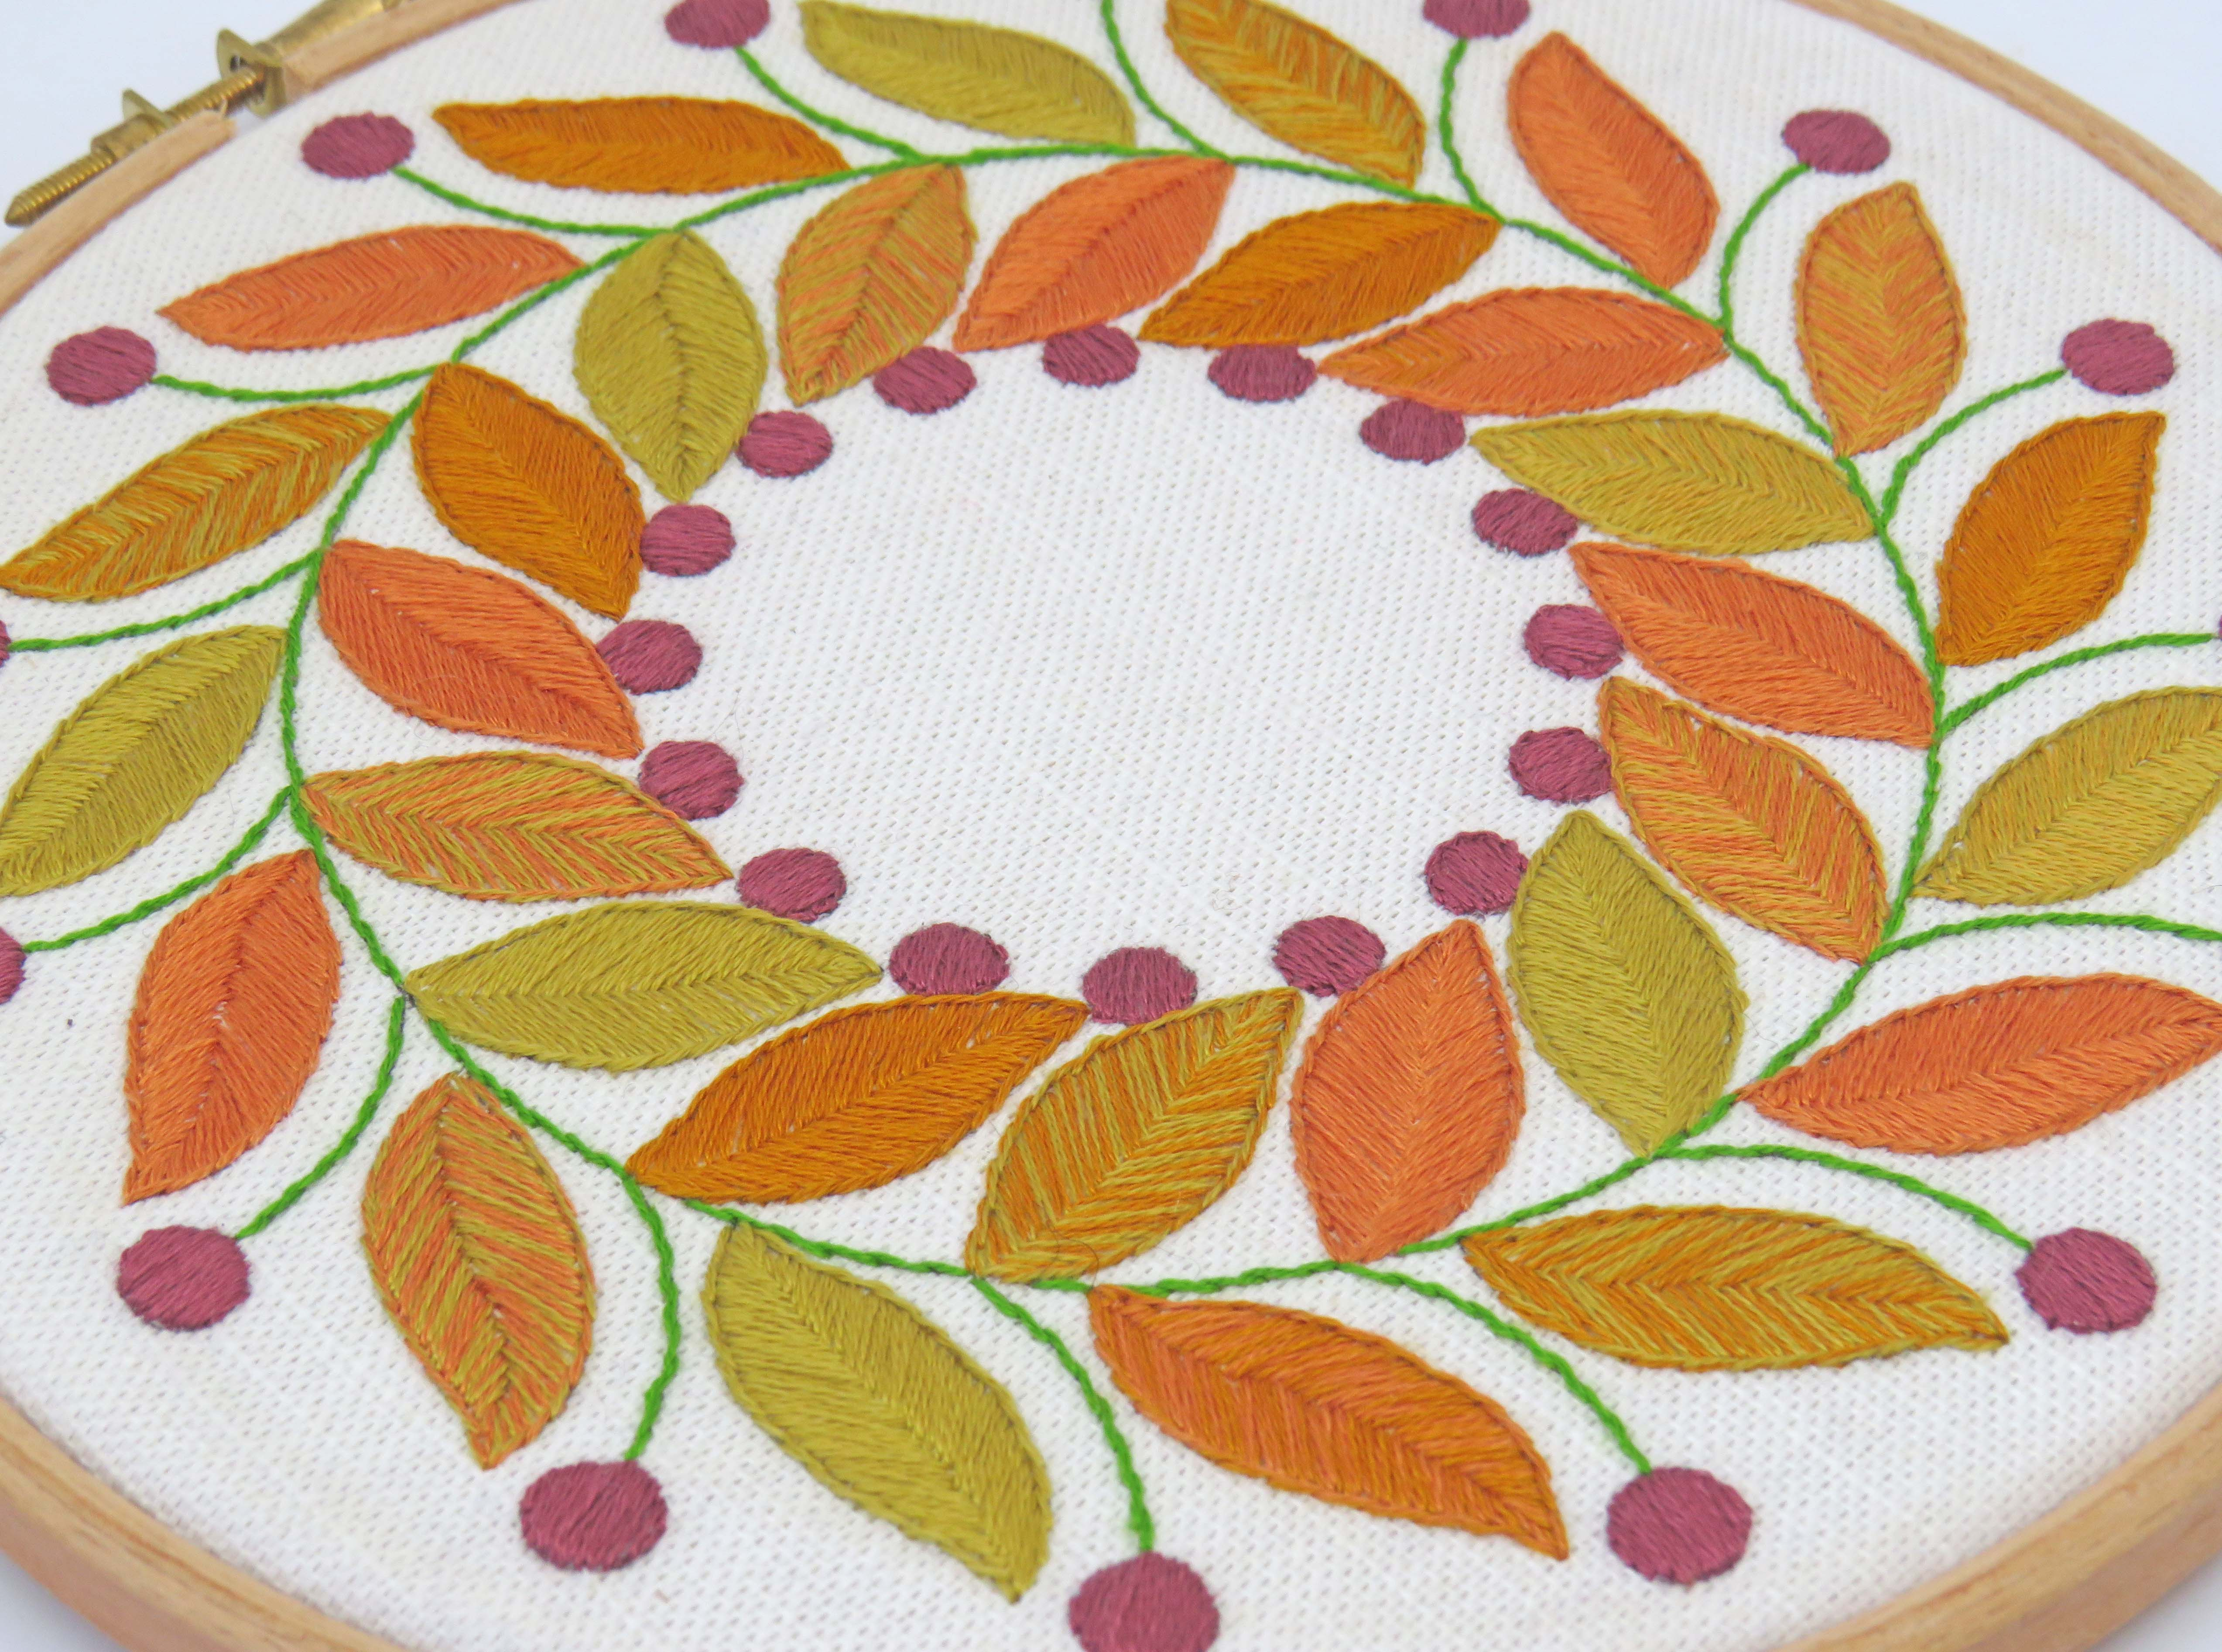 golden leaves hand embroidery pattern by StitchDoodles